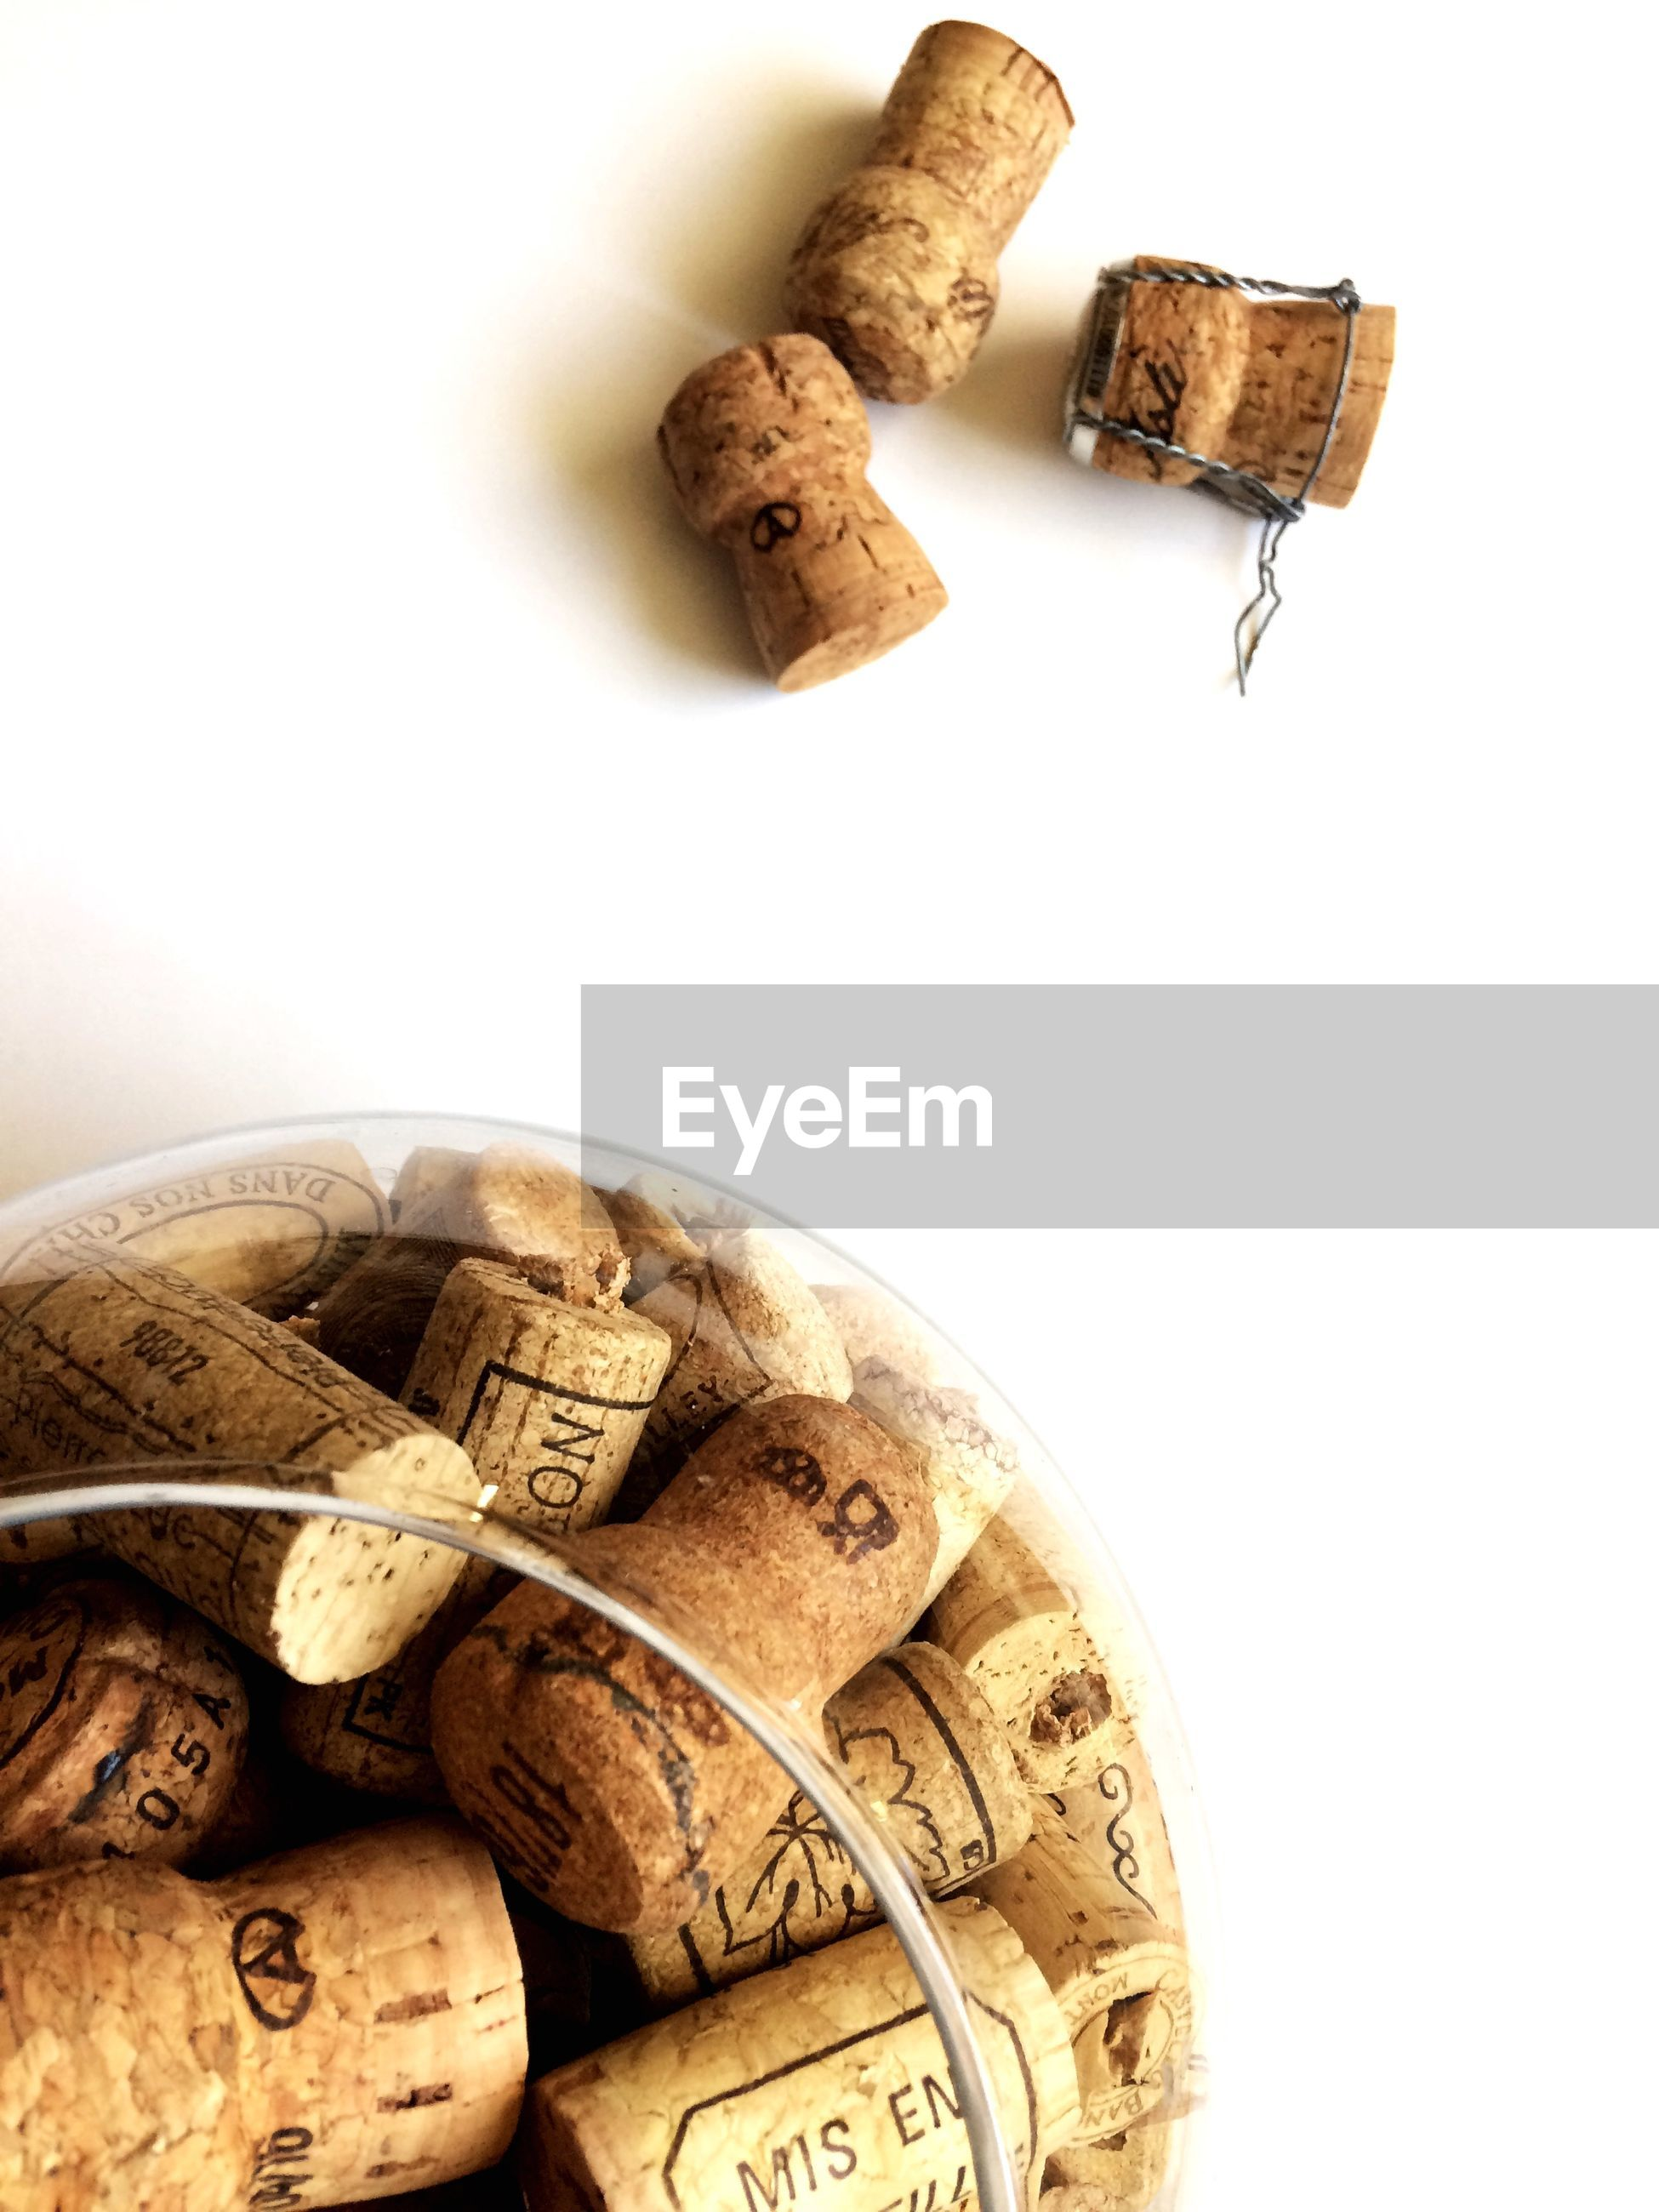 High angle view of corks in container on white background